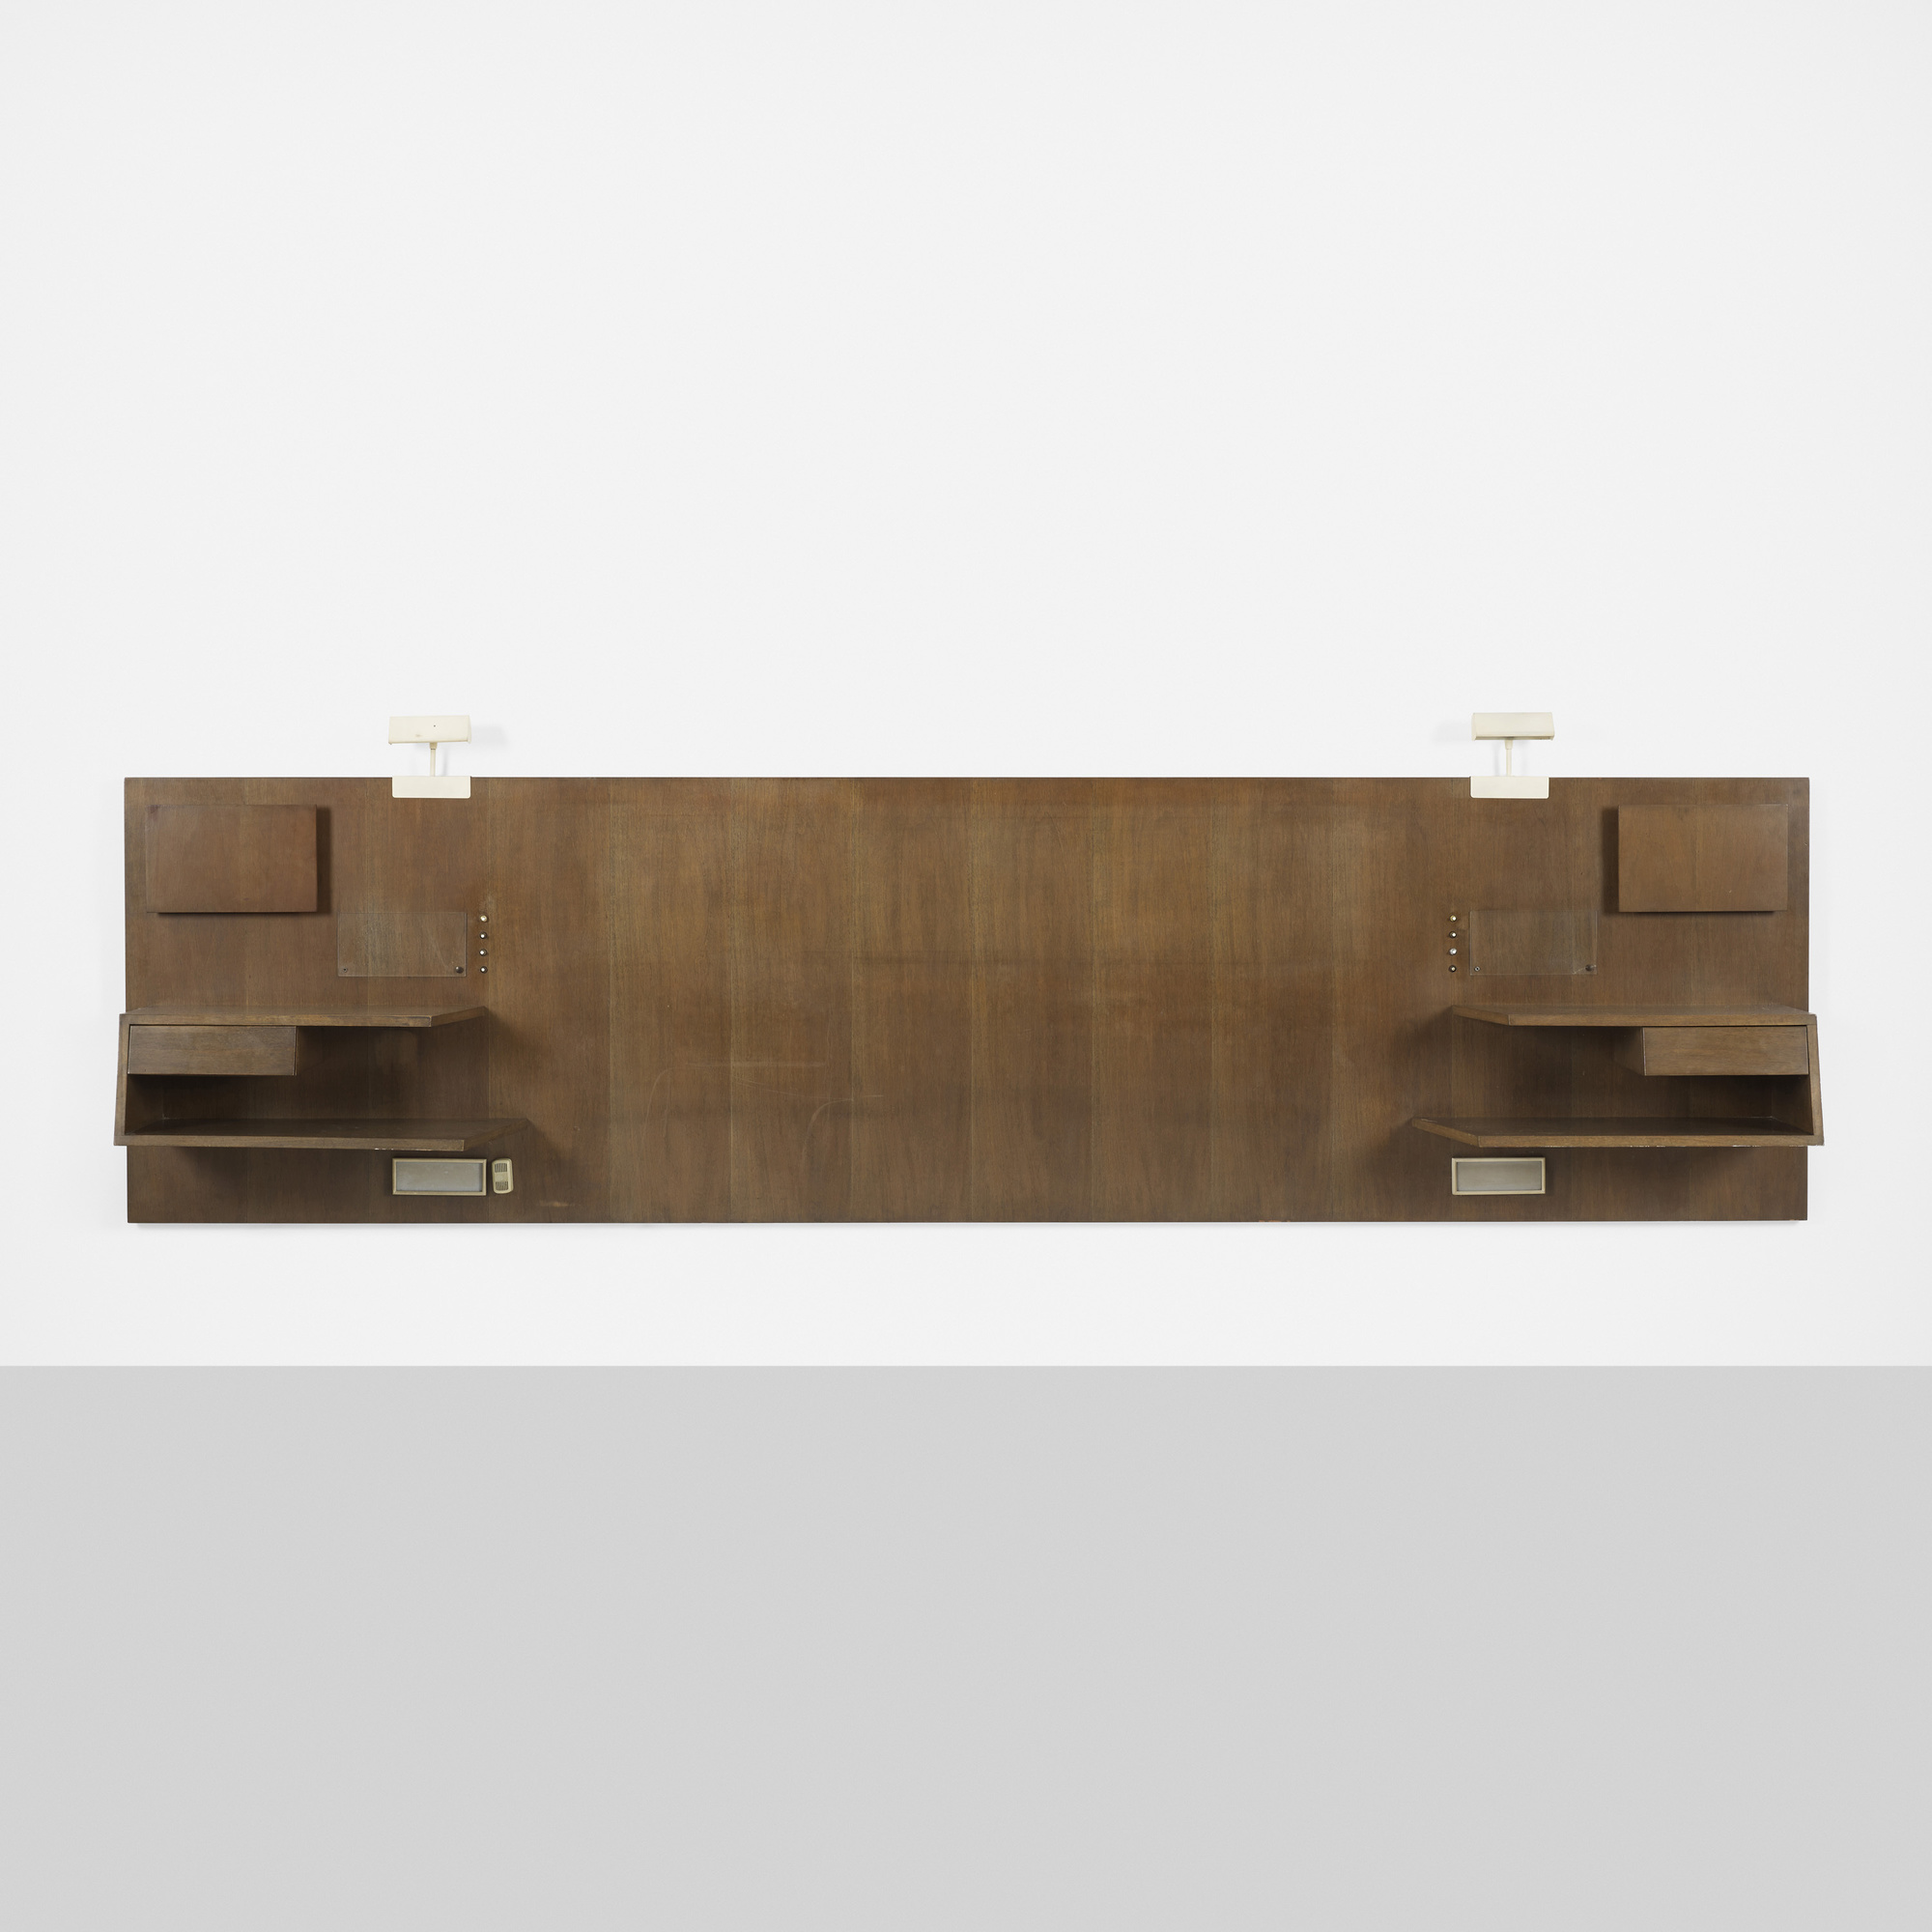 664: Gio Ponti / queen-sized headboard (1 of 1)